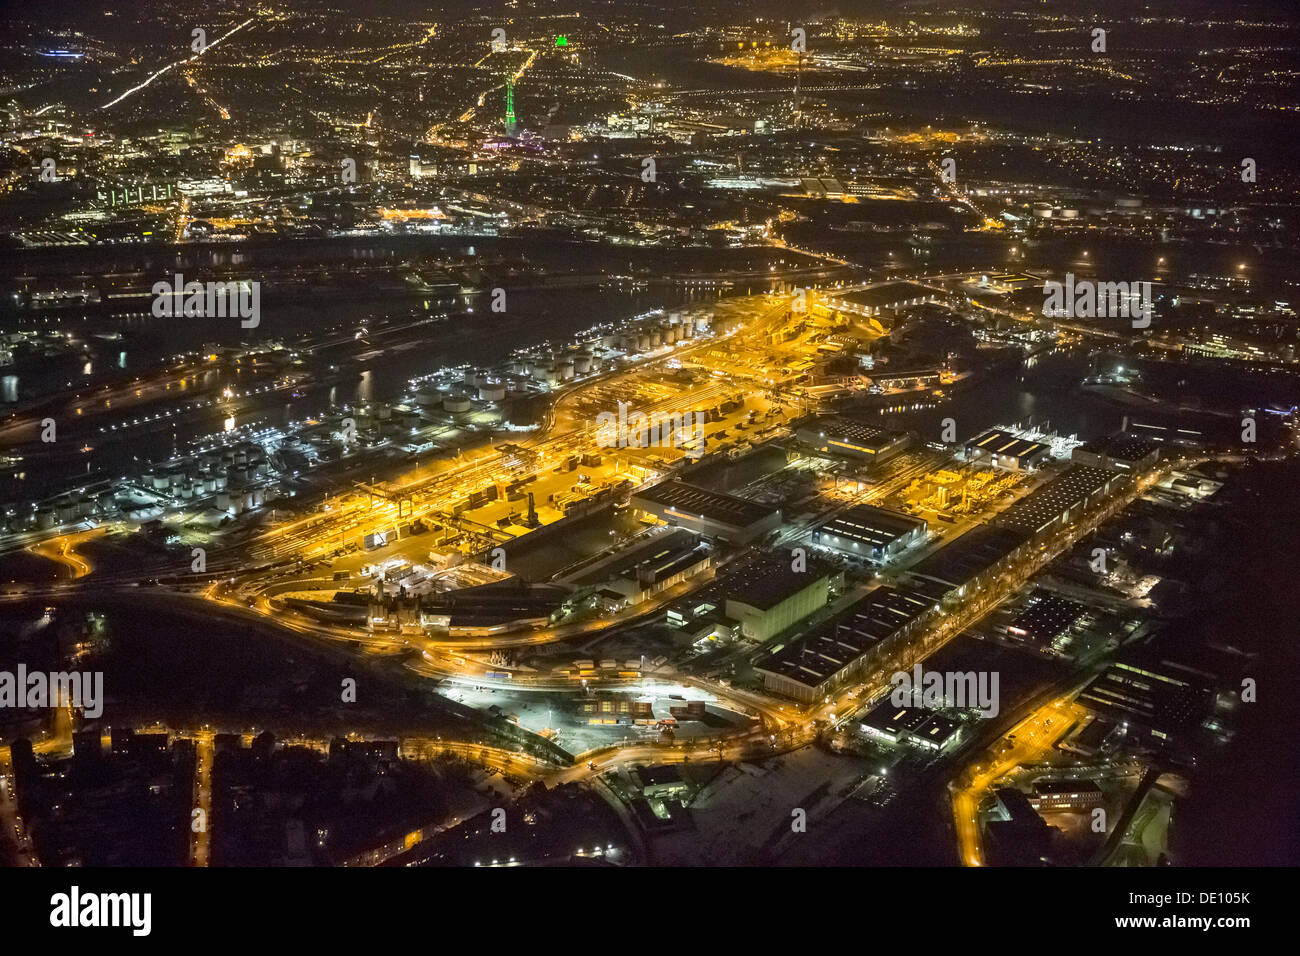 Aerial view, Ruhr port, Duisport, at night - Stock Image